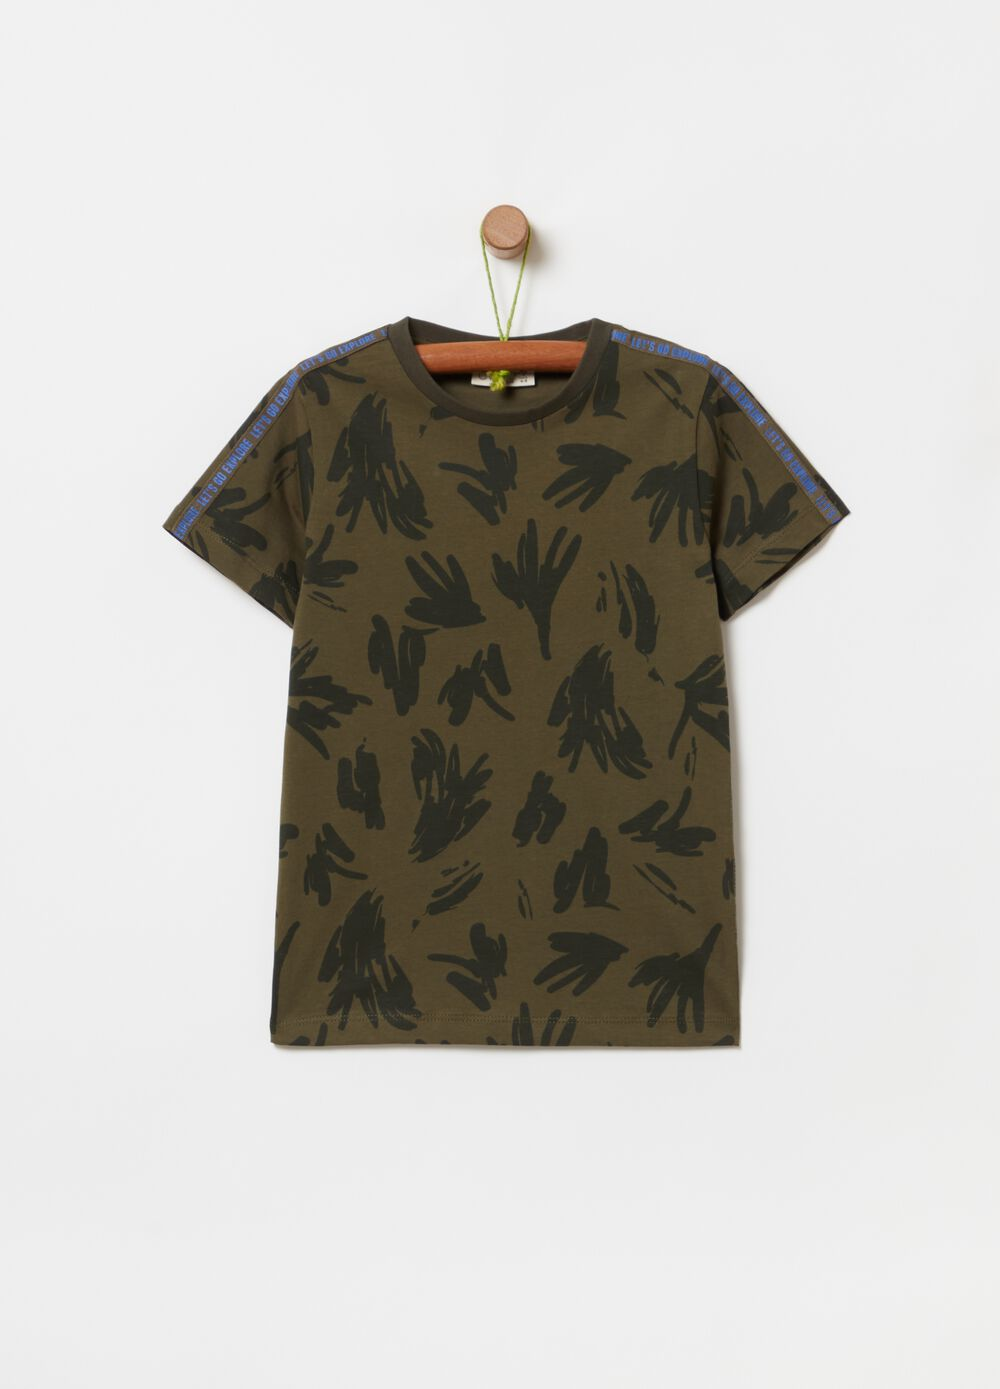 100% organic cotton T-shirt with pattern